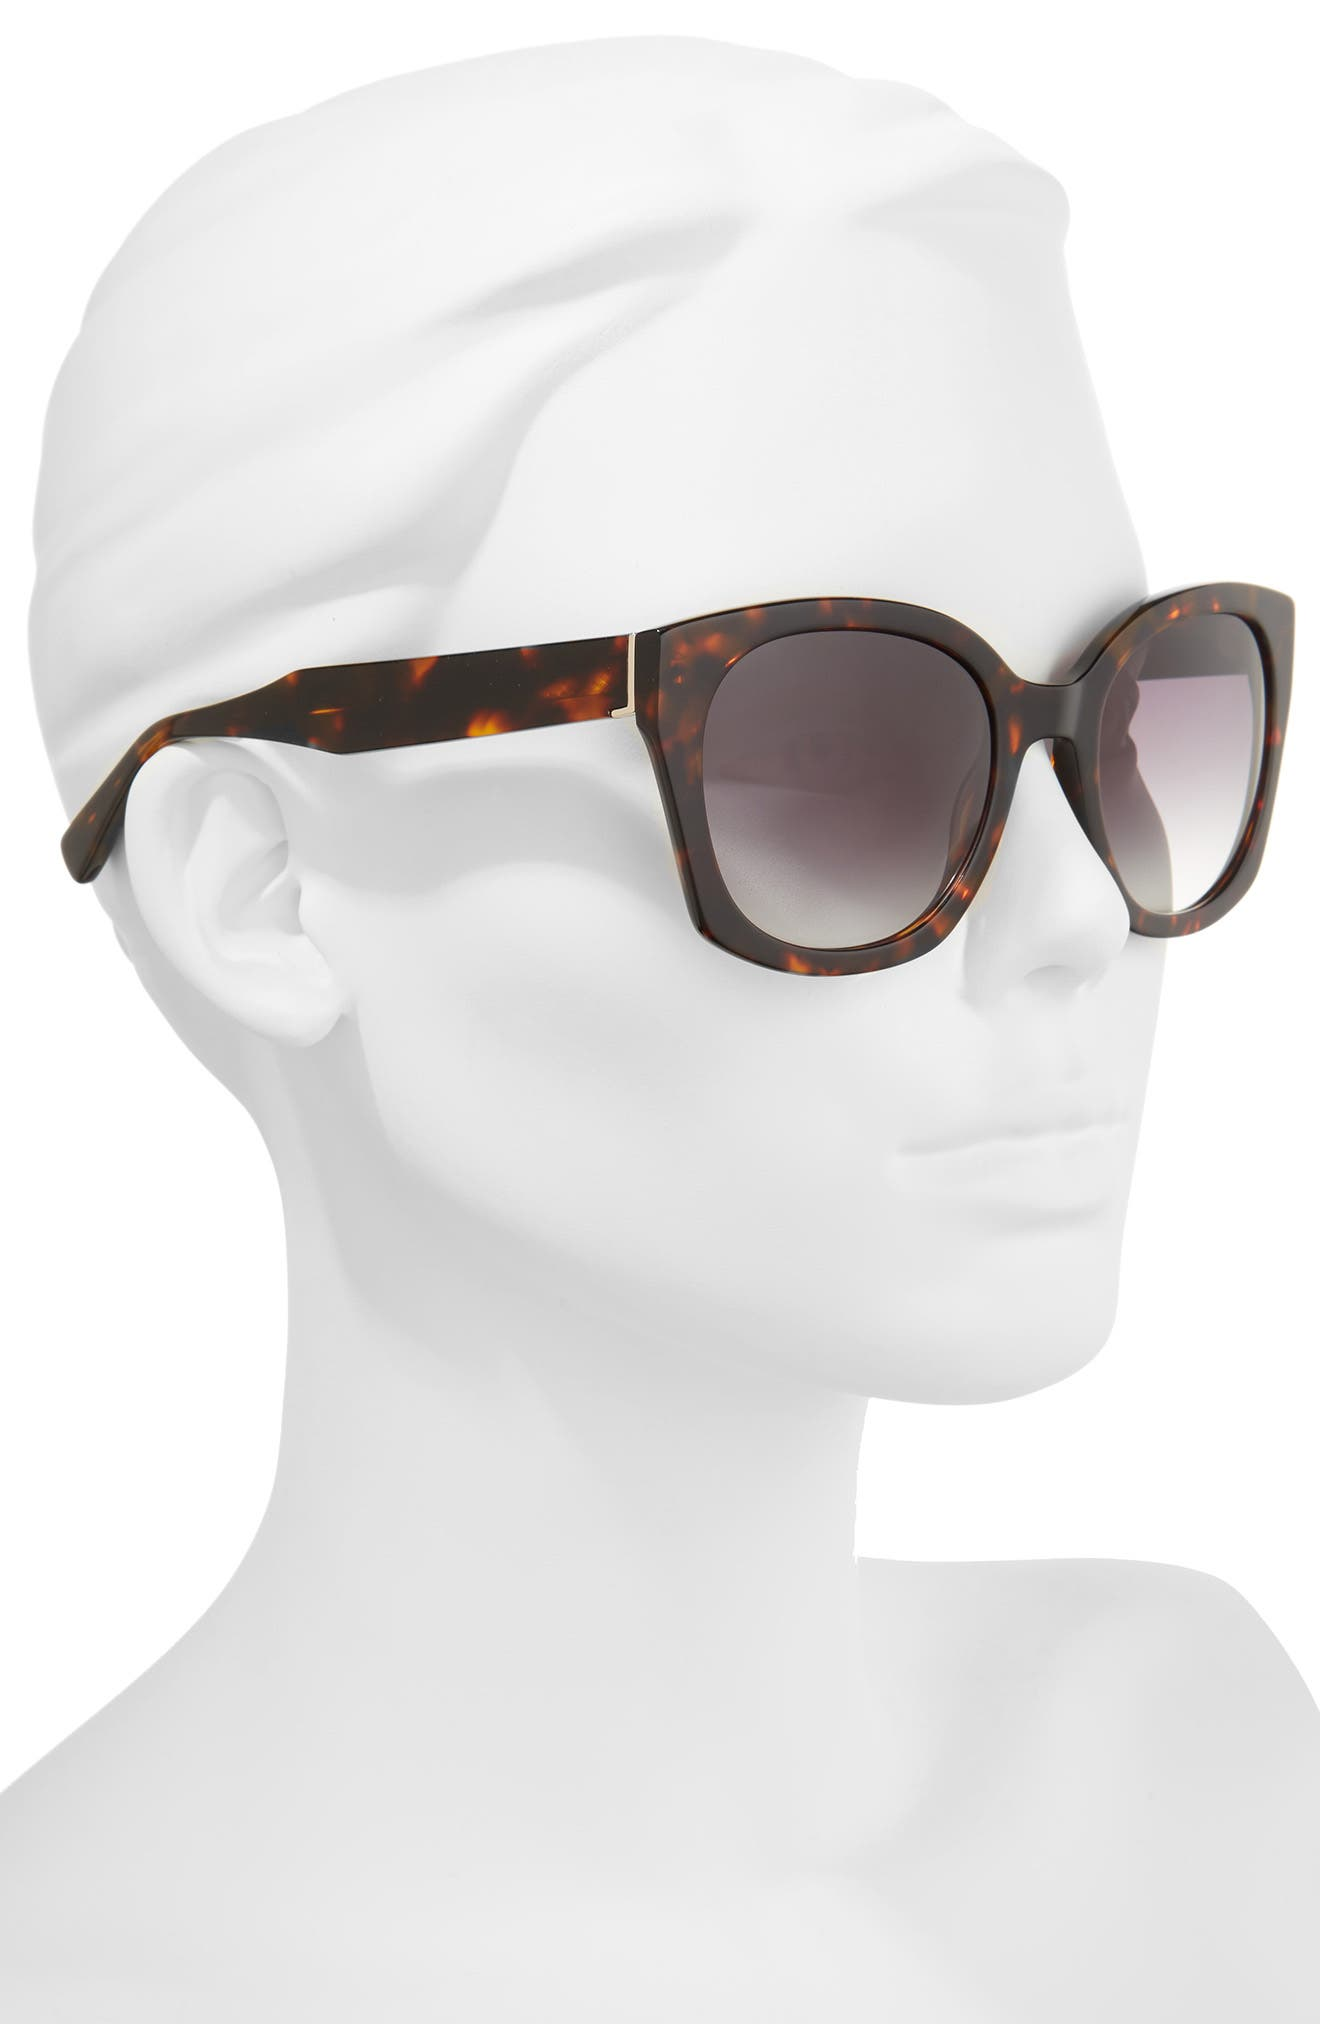 Sadie 54mm Sunglasses,                             Alternate thumbnail 2, color,                             HAVANA TORTOISE